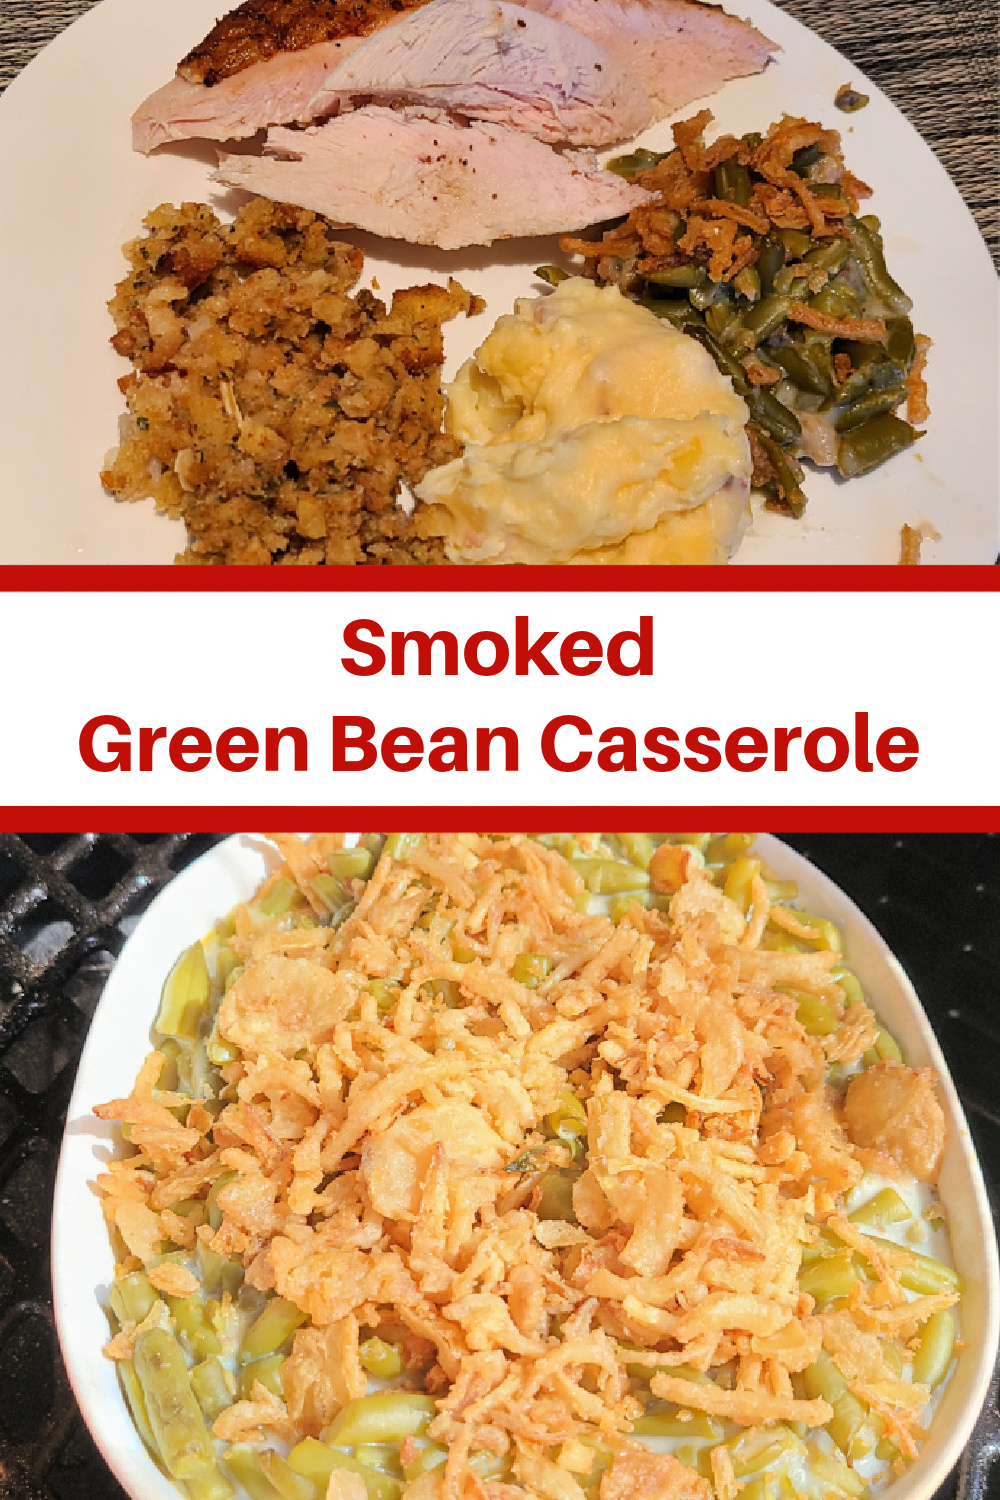 Smoked Green Bean Casserole Recipe is perfect to throw in the smoker with smoked turkey or any smoked meat! The smoke flavor is amazing on the crispy onions! This is not just for the holiday's it works for any dinner and any smoked meat!